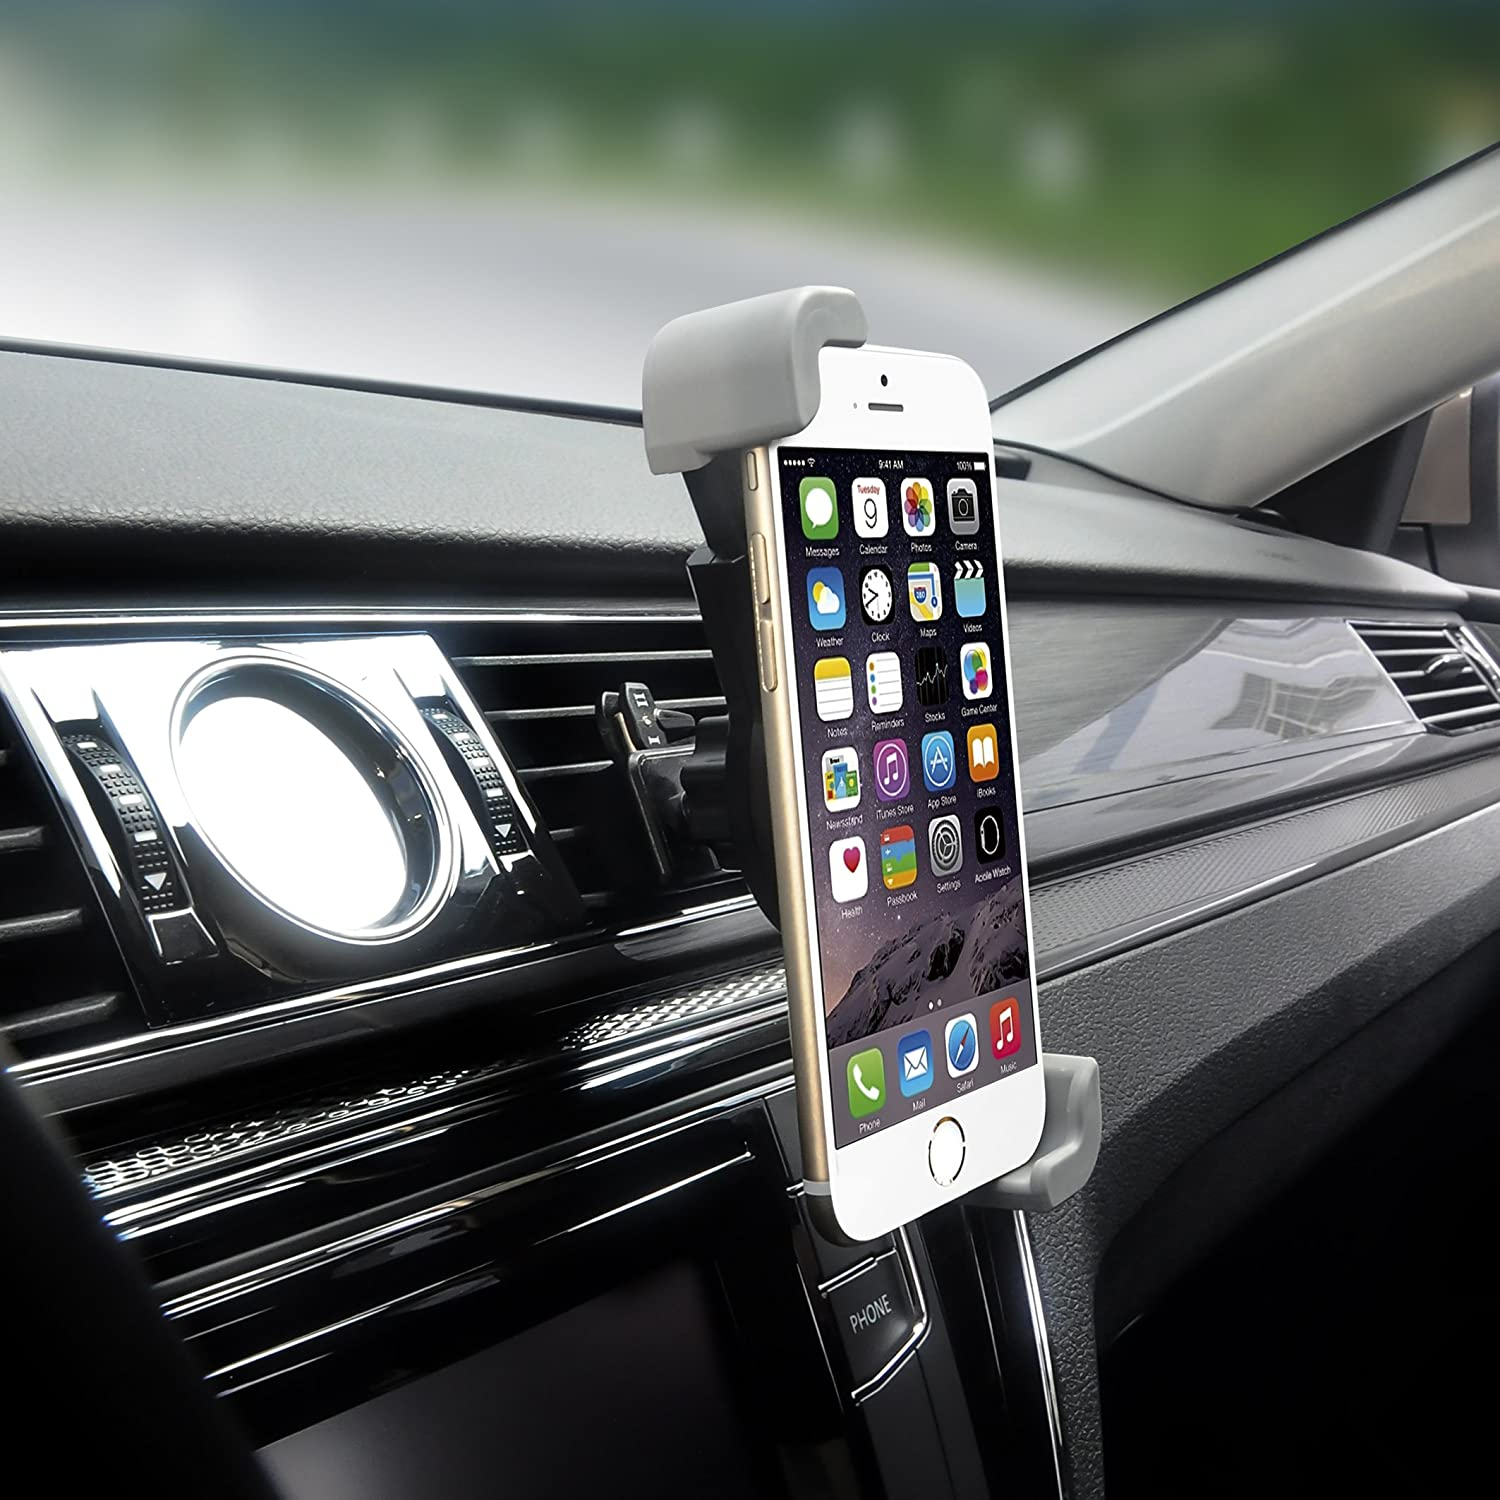 Car Mount Universal Flexible Arm Windshield Car Phone Holder with Strong Suction Cup Compatible iPhone X SE 7 Plus 6s 6 Plus 6 5s 5 4s 4 Samsung Galaxy S9 Plus S8 Note S7 Edge LG Nexus Sony and More